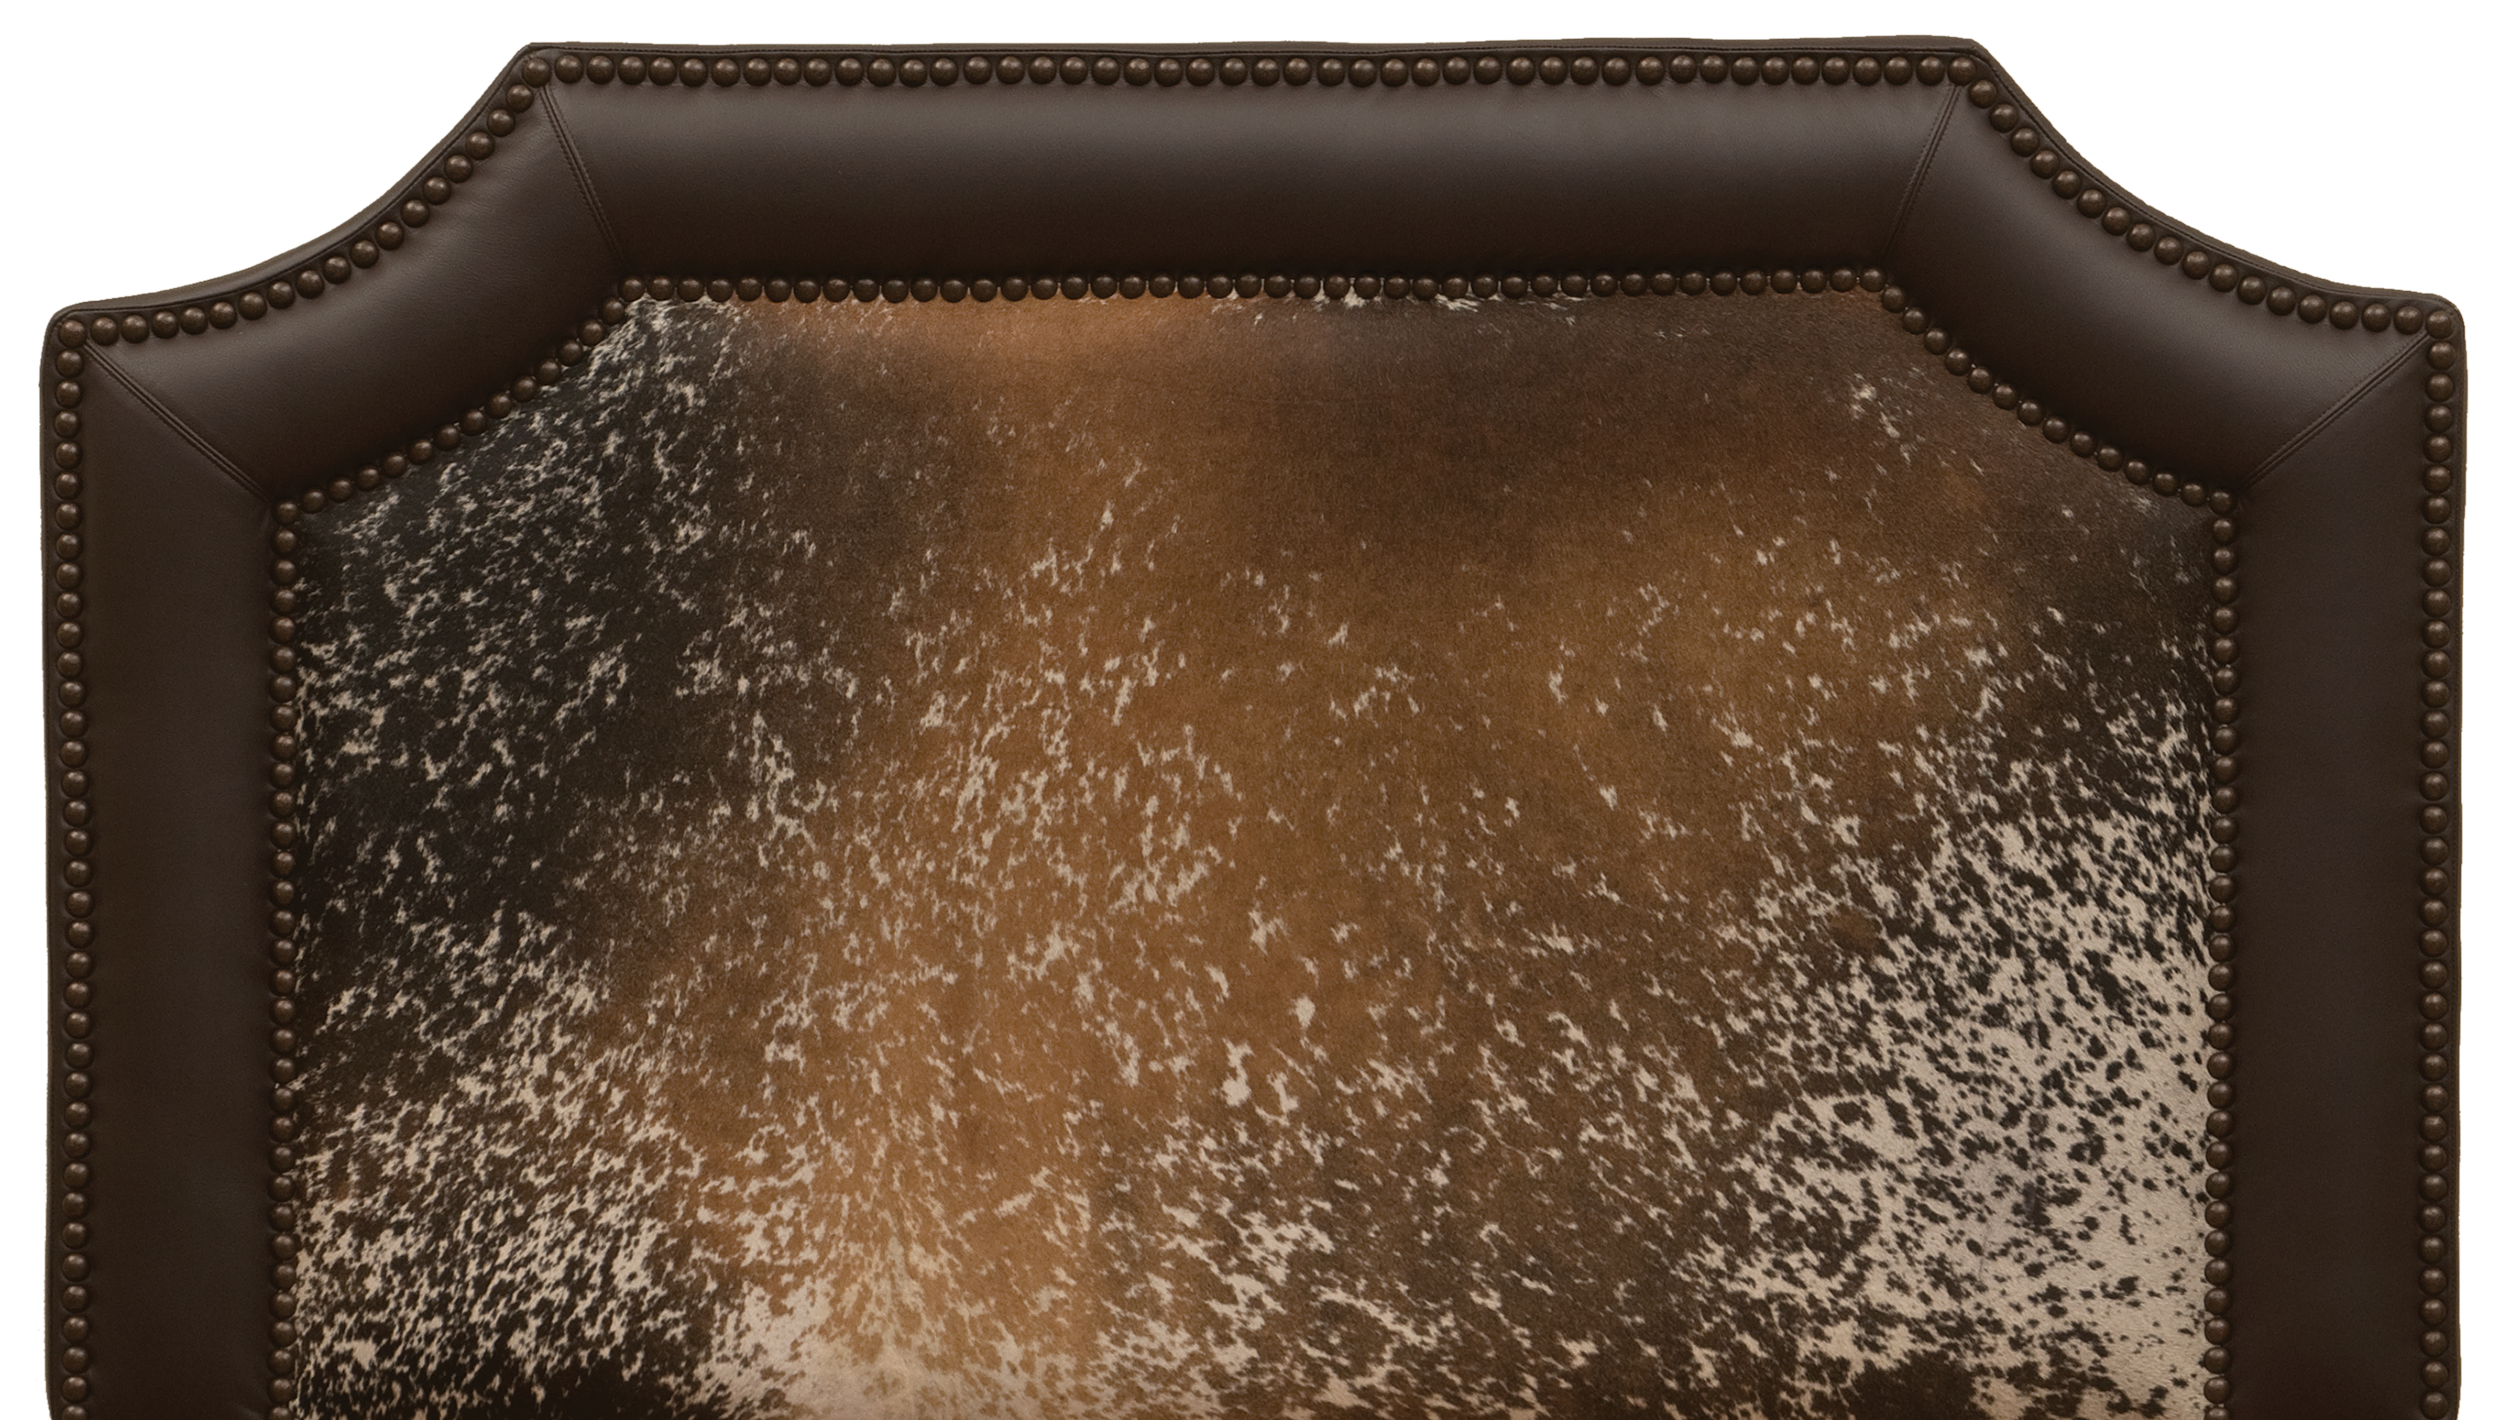 Outlaw Headboard - Shown in Dark Brown Speckled Hair on HIde, Mesa leather band and antique brown nail heads